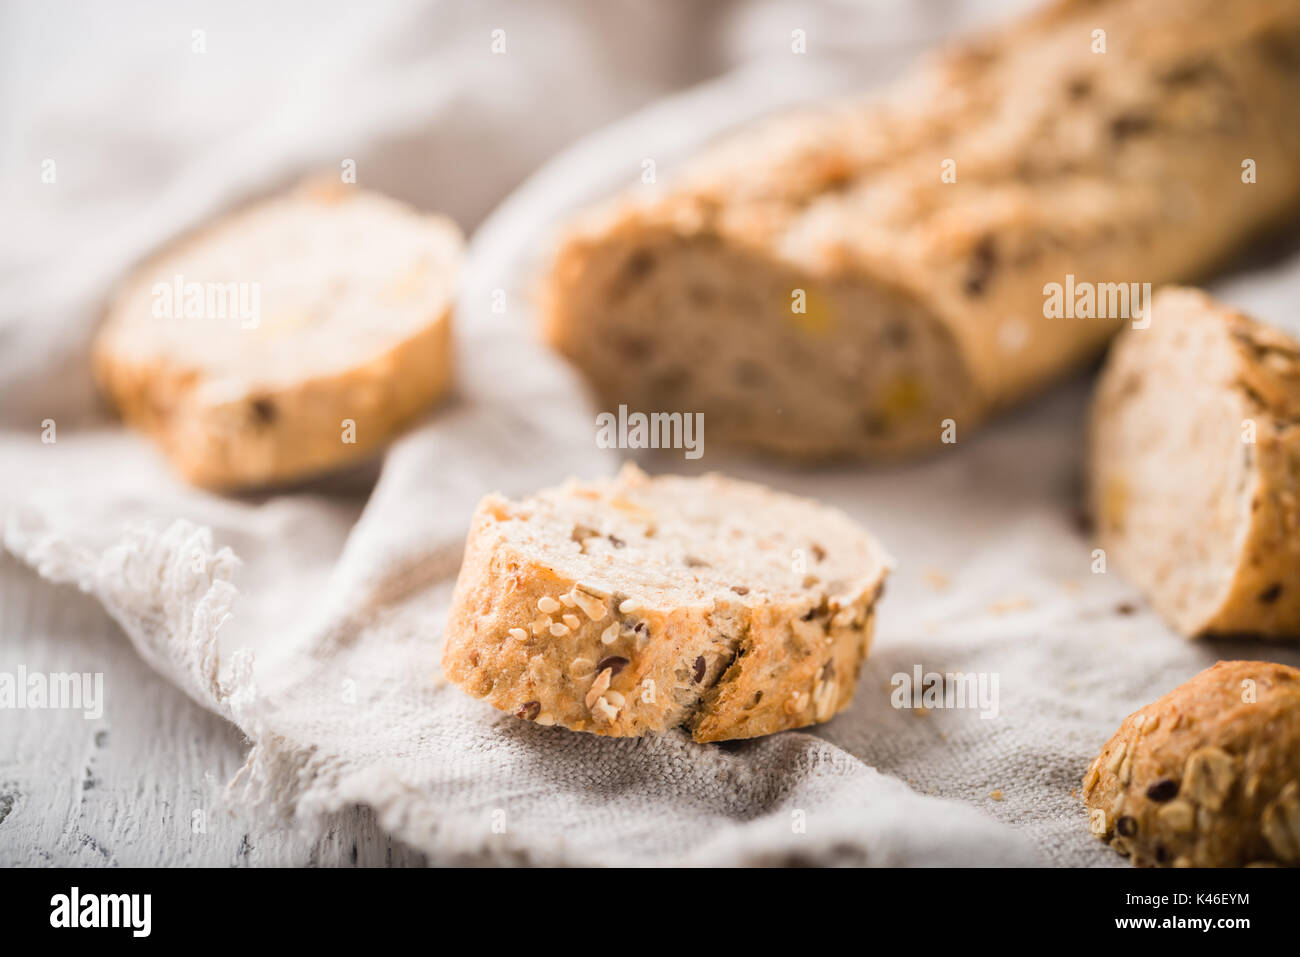 Fresh, healthy whole grain rye slices on cloth and rustic wooden table, baguette close up. Bakery and grocery concept - Stock Image